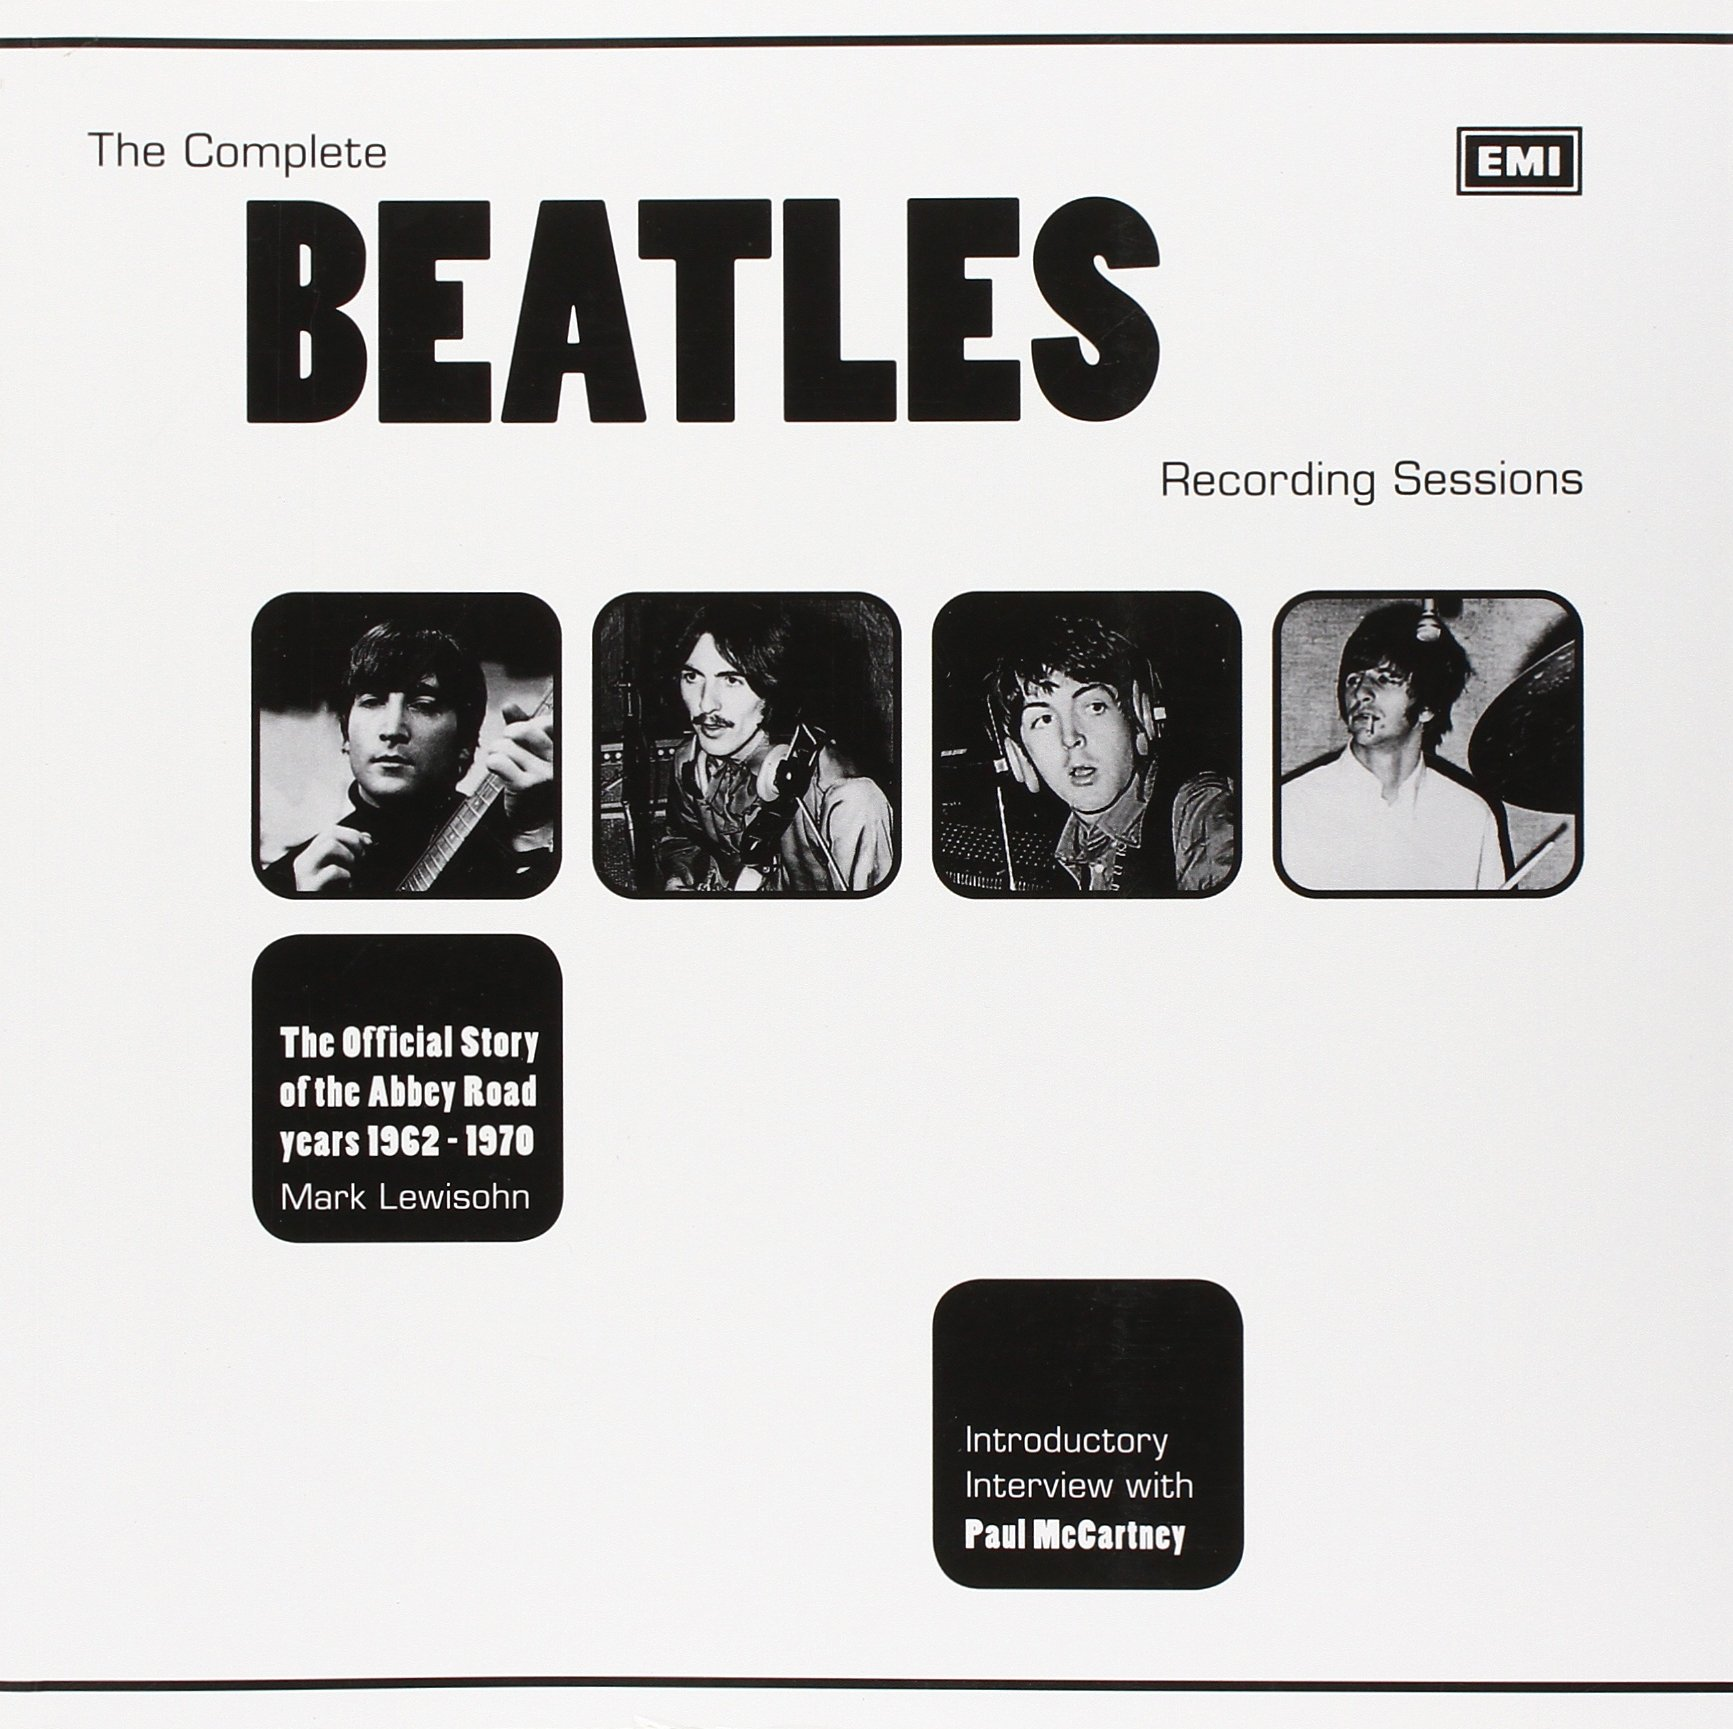 The Complete Beatles Recording Sessions pdf